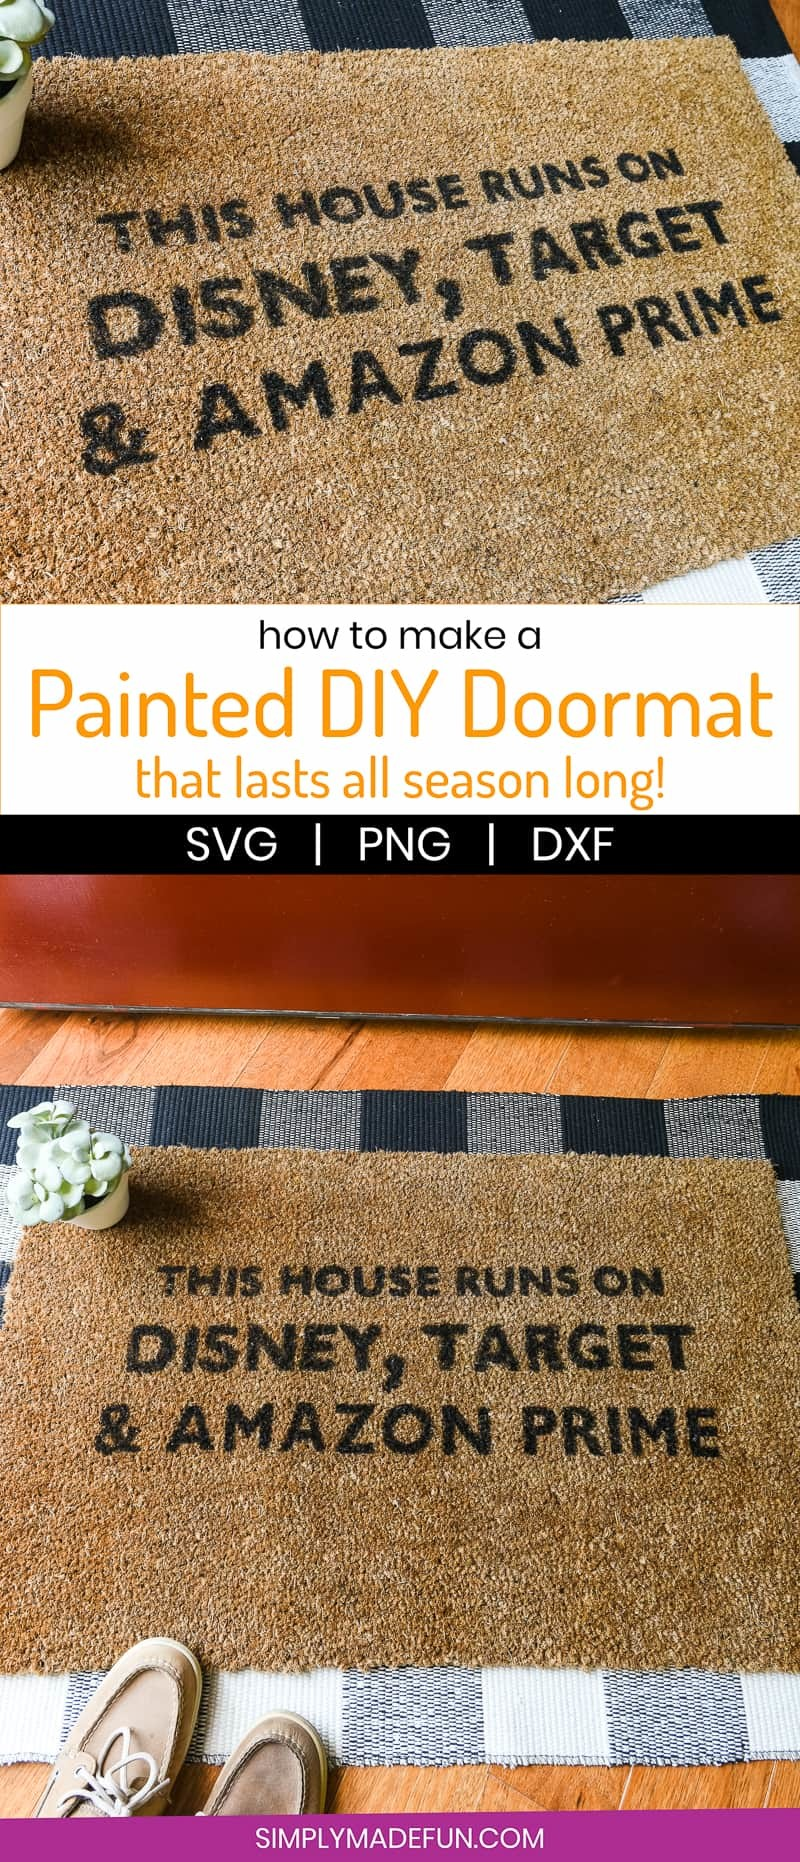 How to Make a Painted DIY Doormat - Simply Made Fun